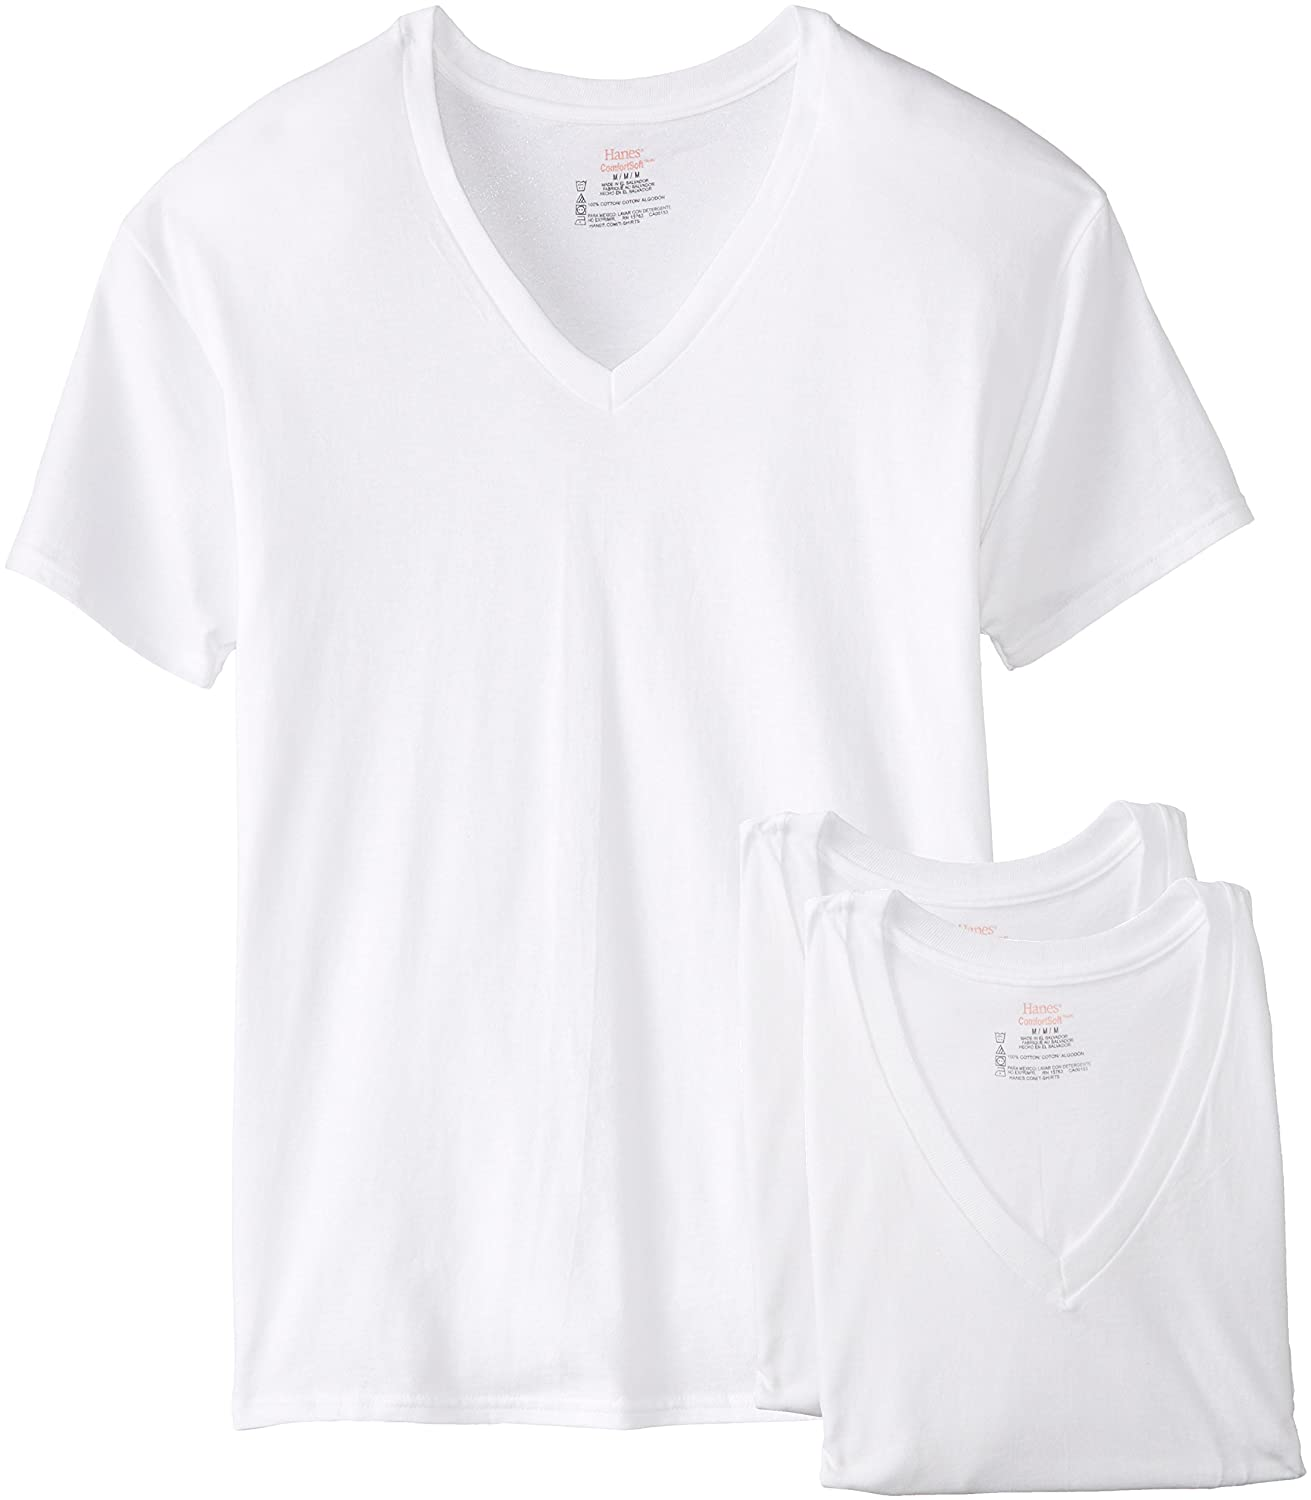 f2b875a20d1e Amazon.com  Hanes Men s 3-Pack V-Neck T-Shirt  Clothing